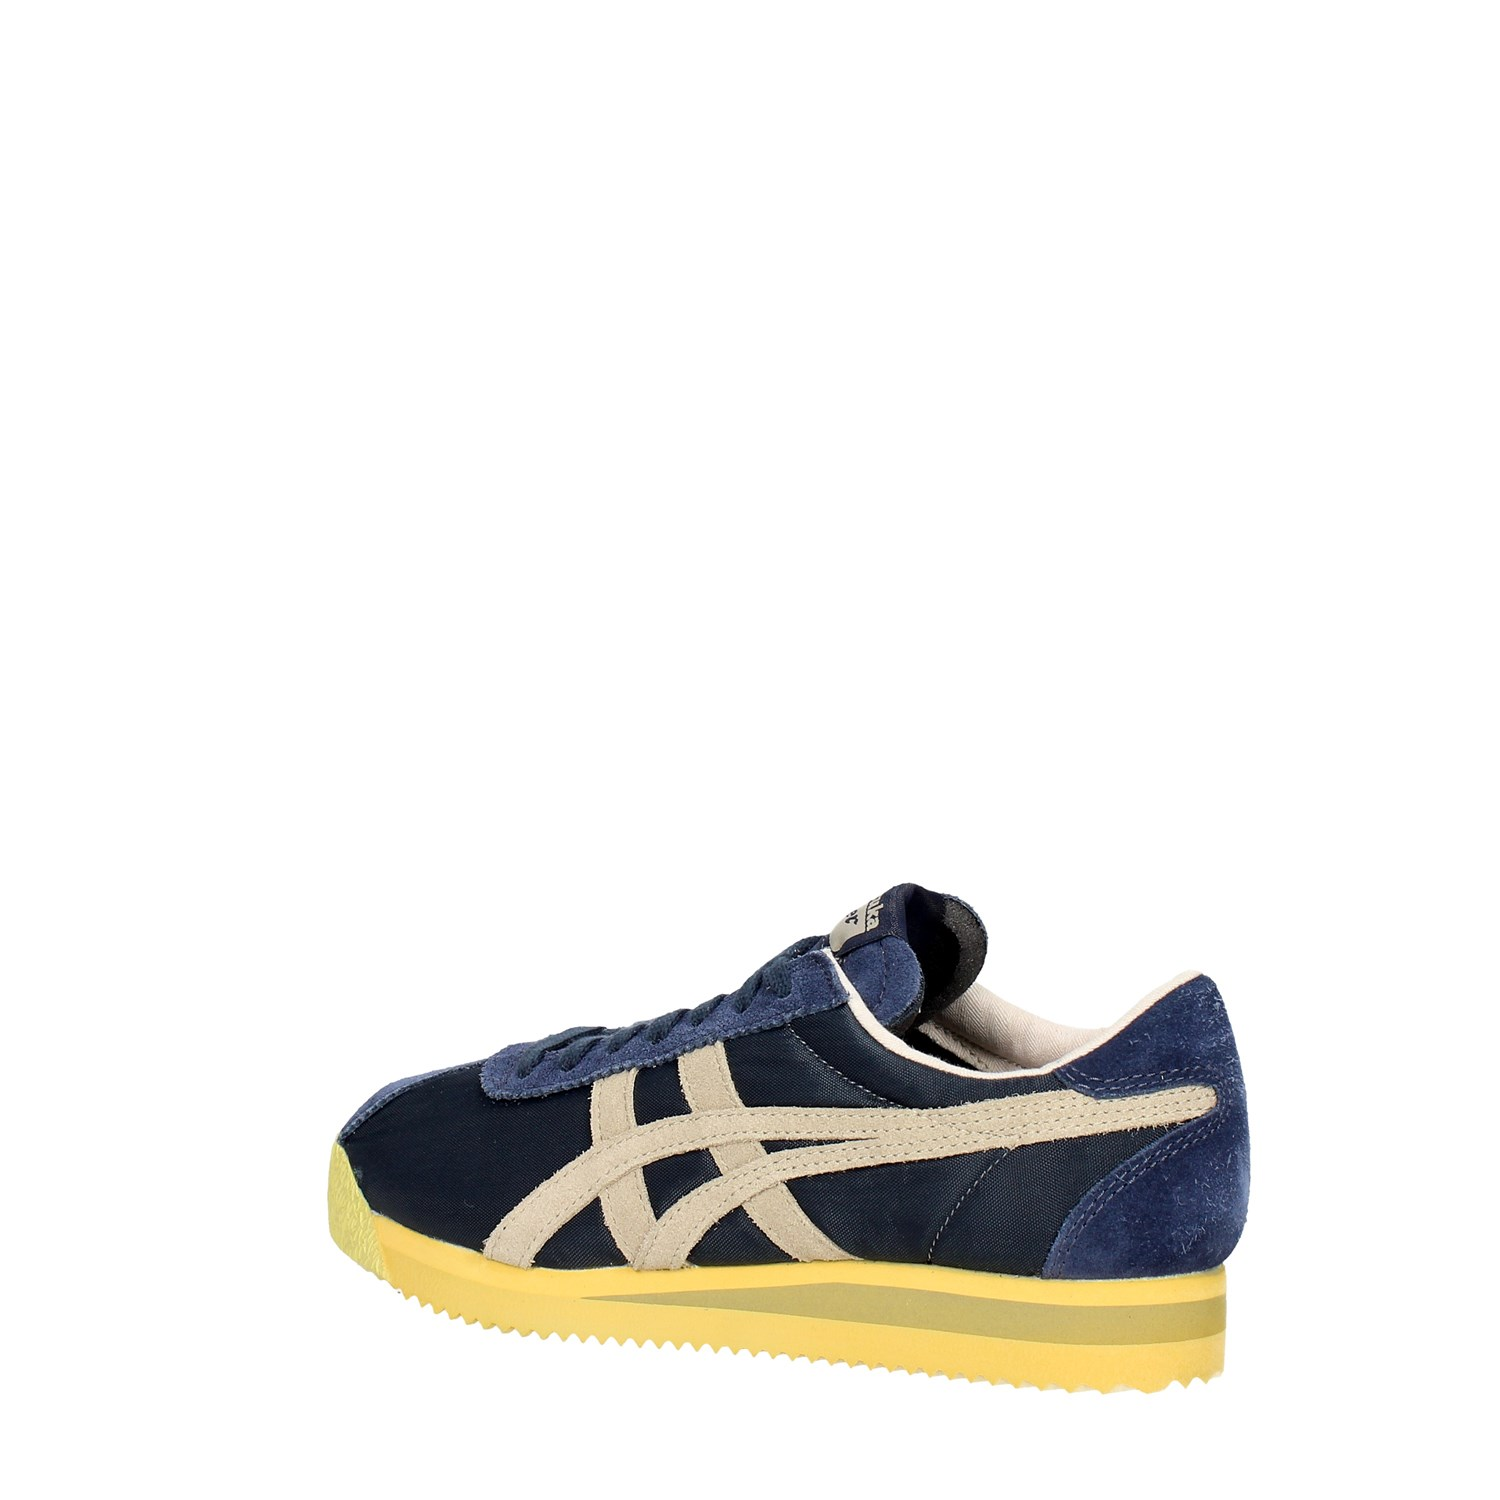 the latest c2743 e85d2 Details about Onitsuka Tiger D7C2N..5805 Blue/Yellow Low Sneakers Women  Spring/Summer